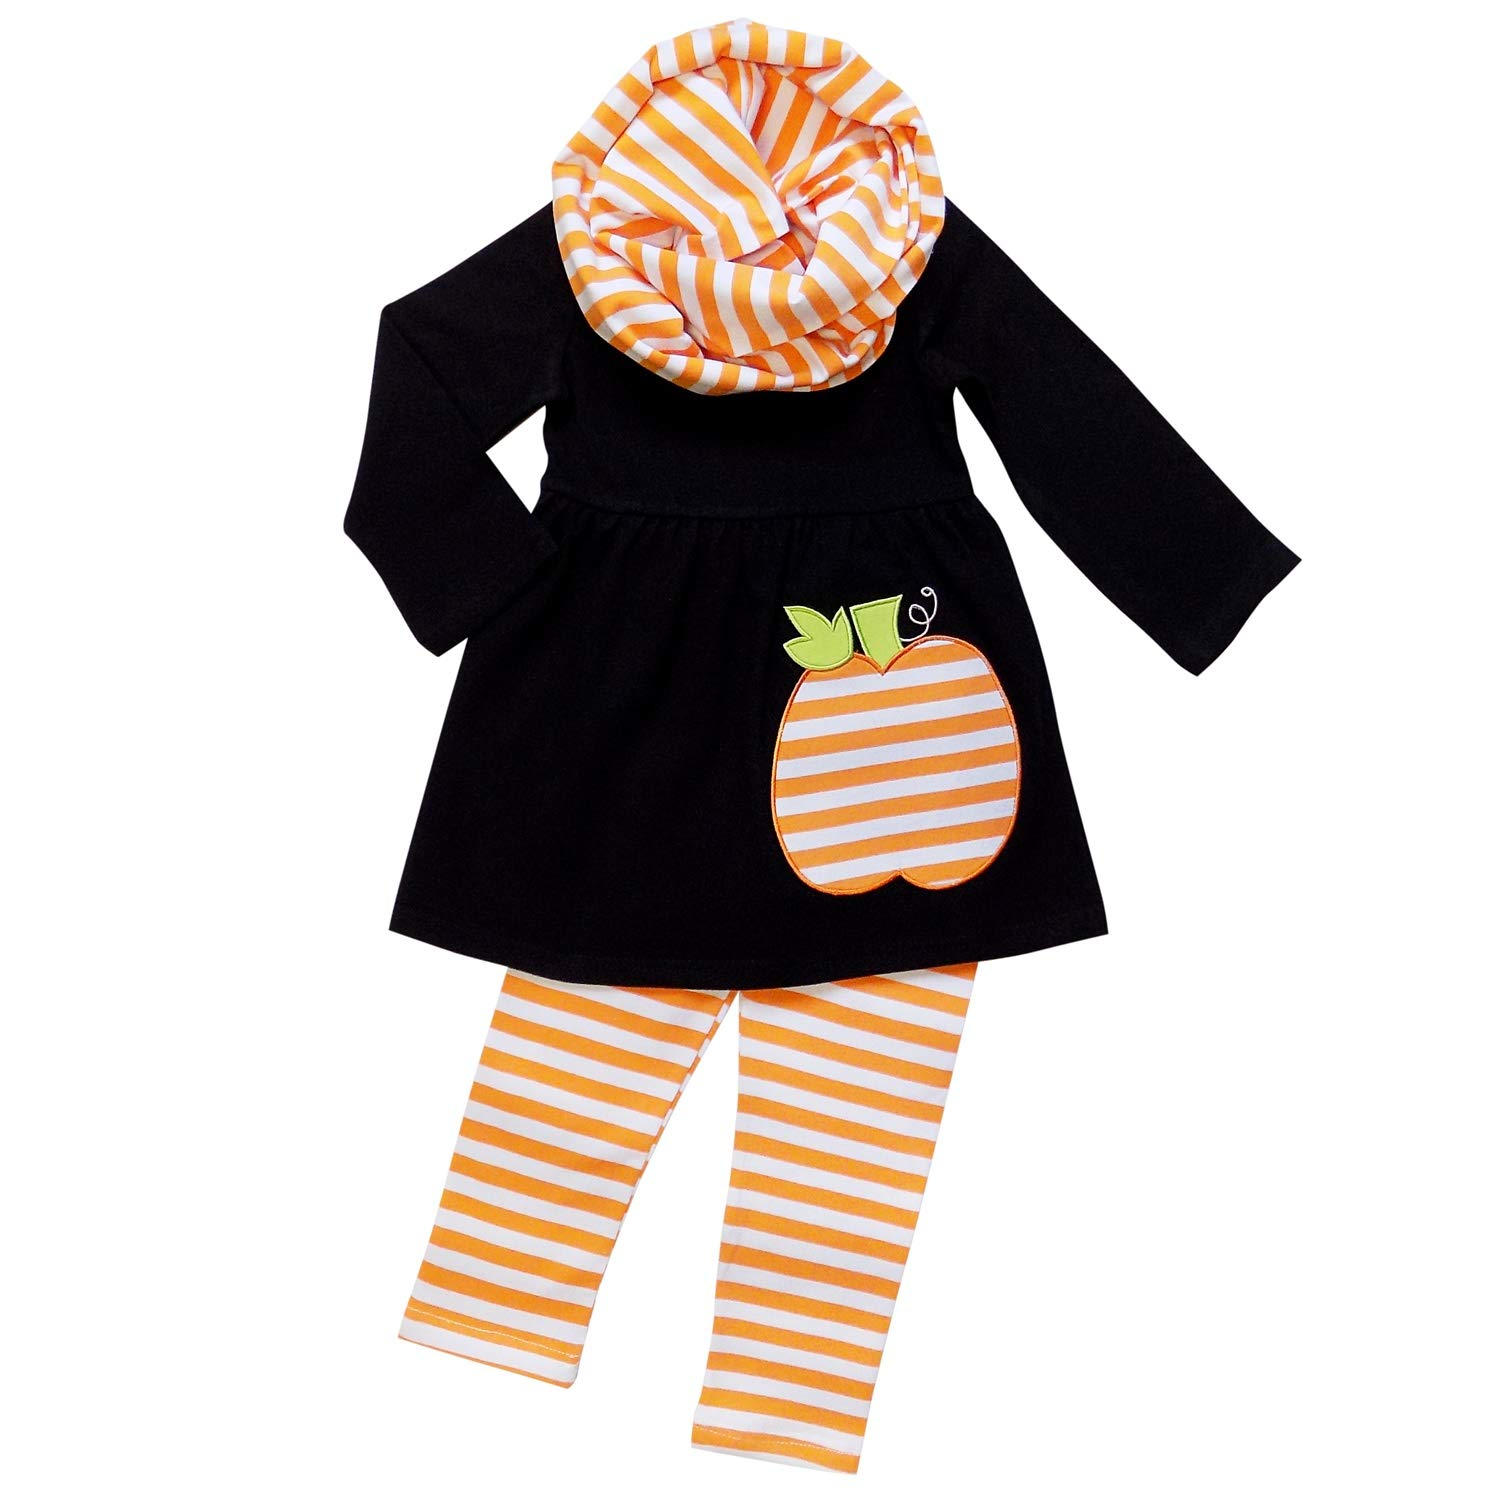 So Sydney Toddler Girls 3 Pc Halloween Fall Tunic Top Leggings Outfit, Infinity Scarf (XS (2T), Stripe Pumpkin Black) HAL3PC-STRIPEPUMPBLK-XS